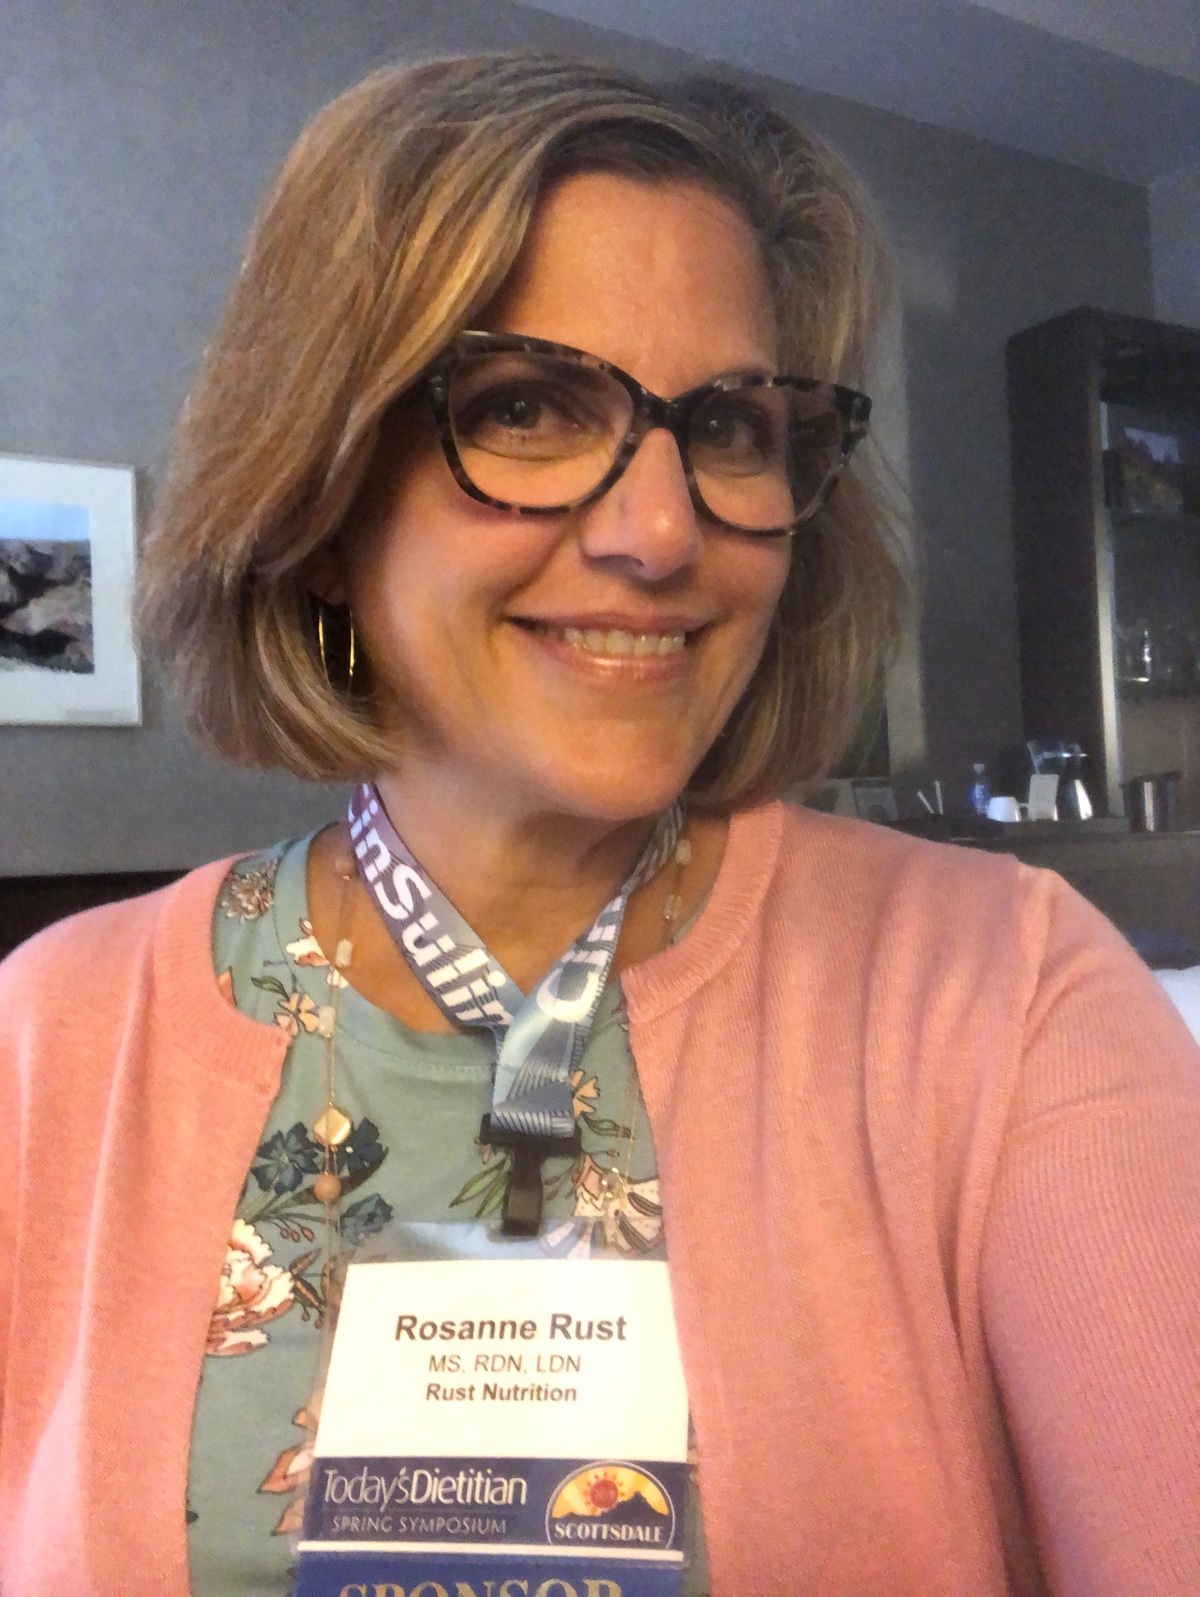 Today's Dietitian - Rosanne Rust MS, RDN, LDN